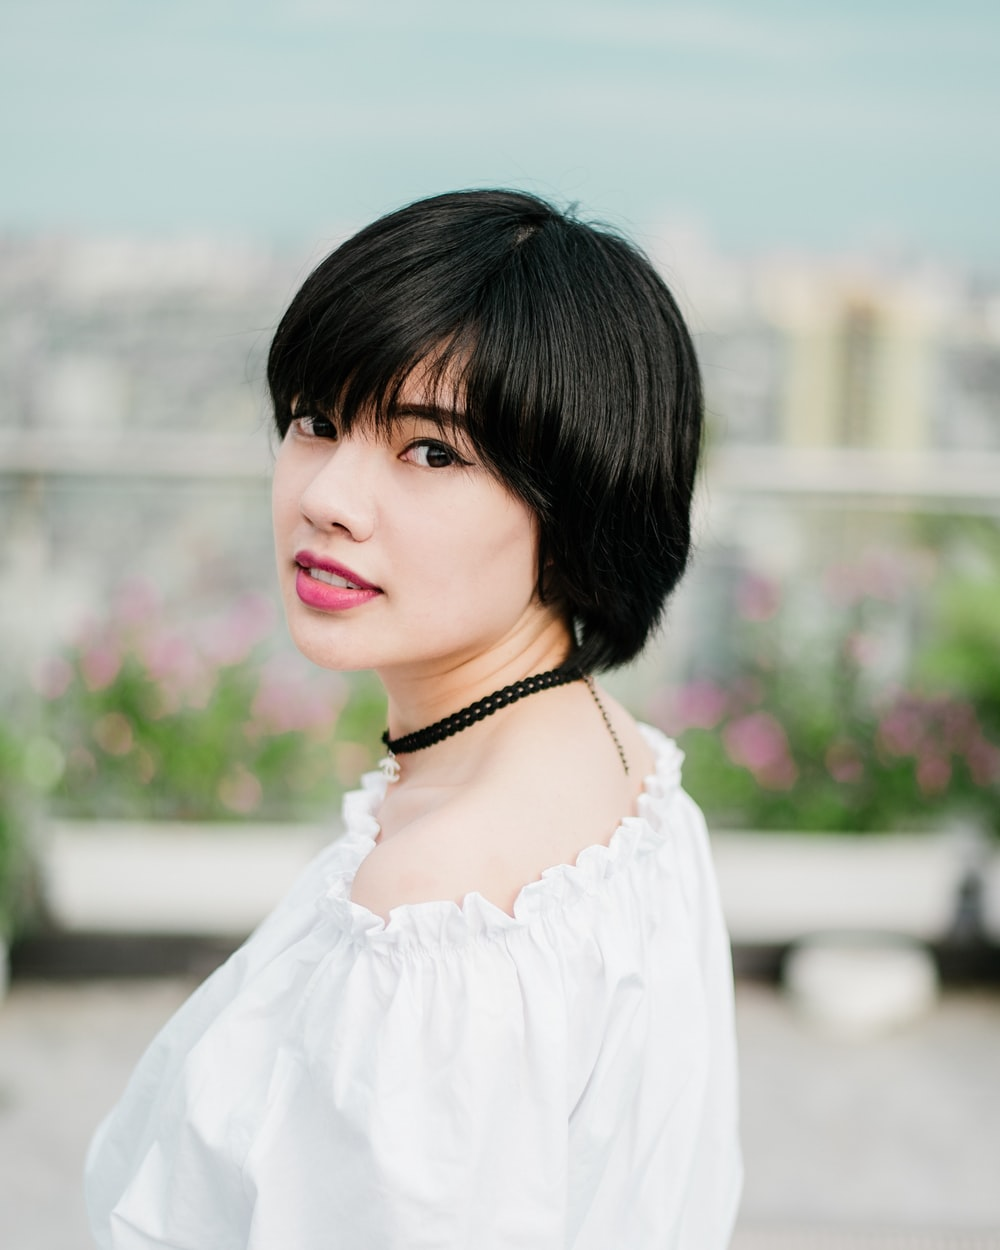 selective focus photo of woman wearing white top and black choker necklace